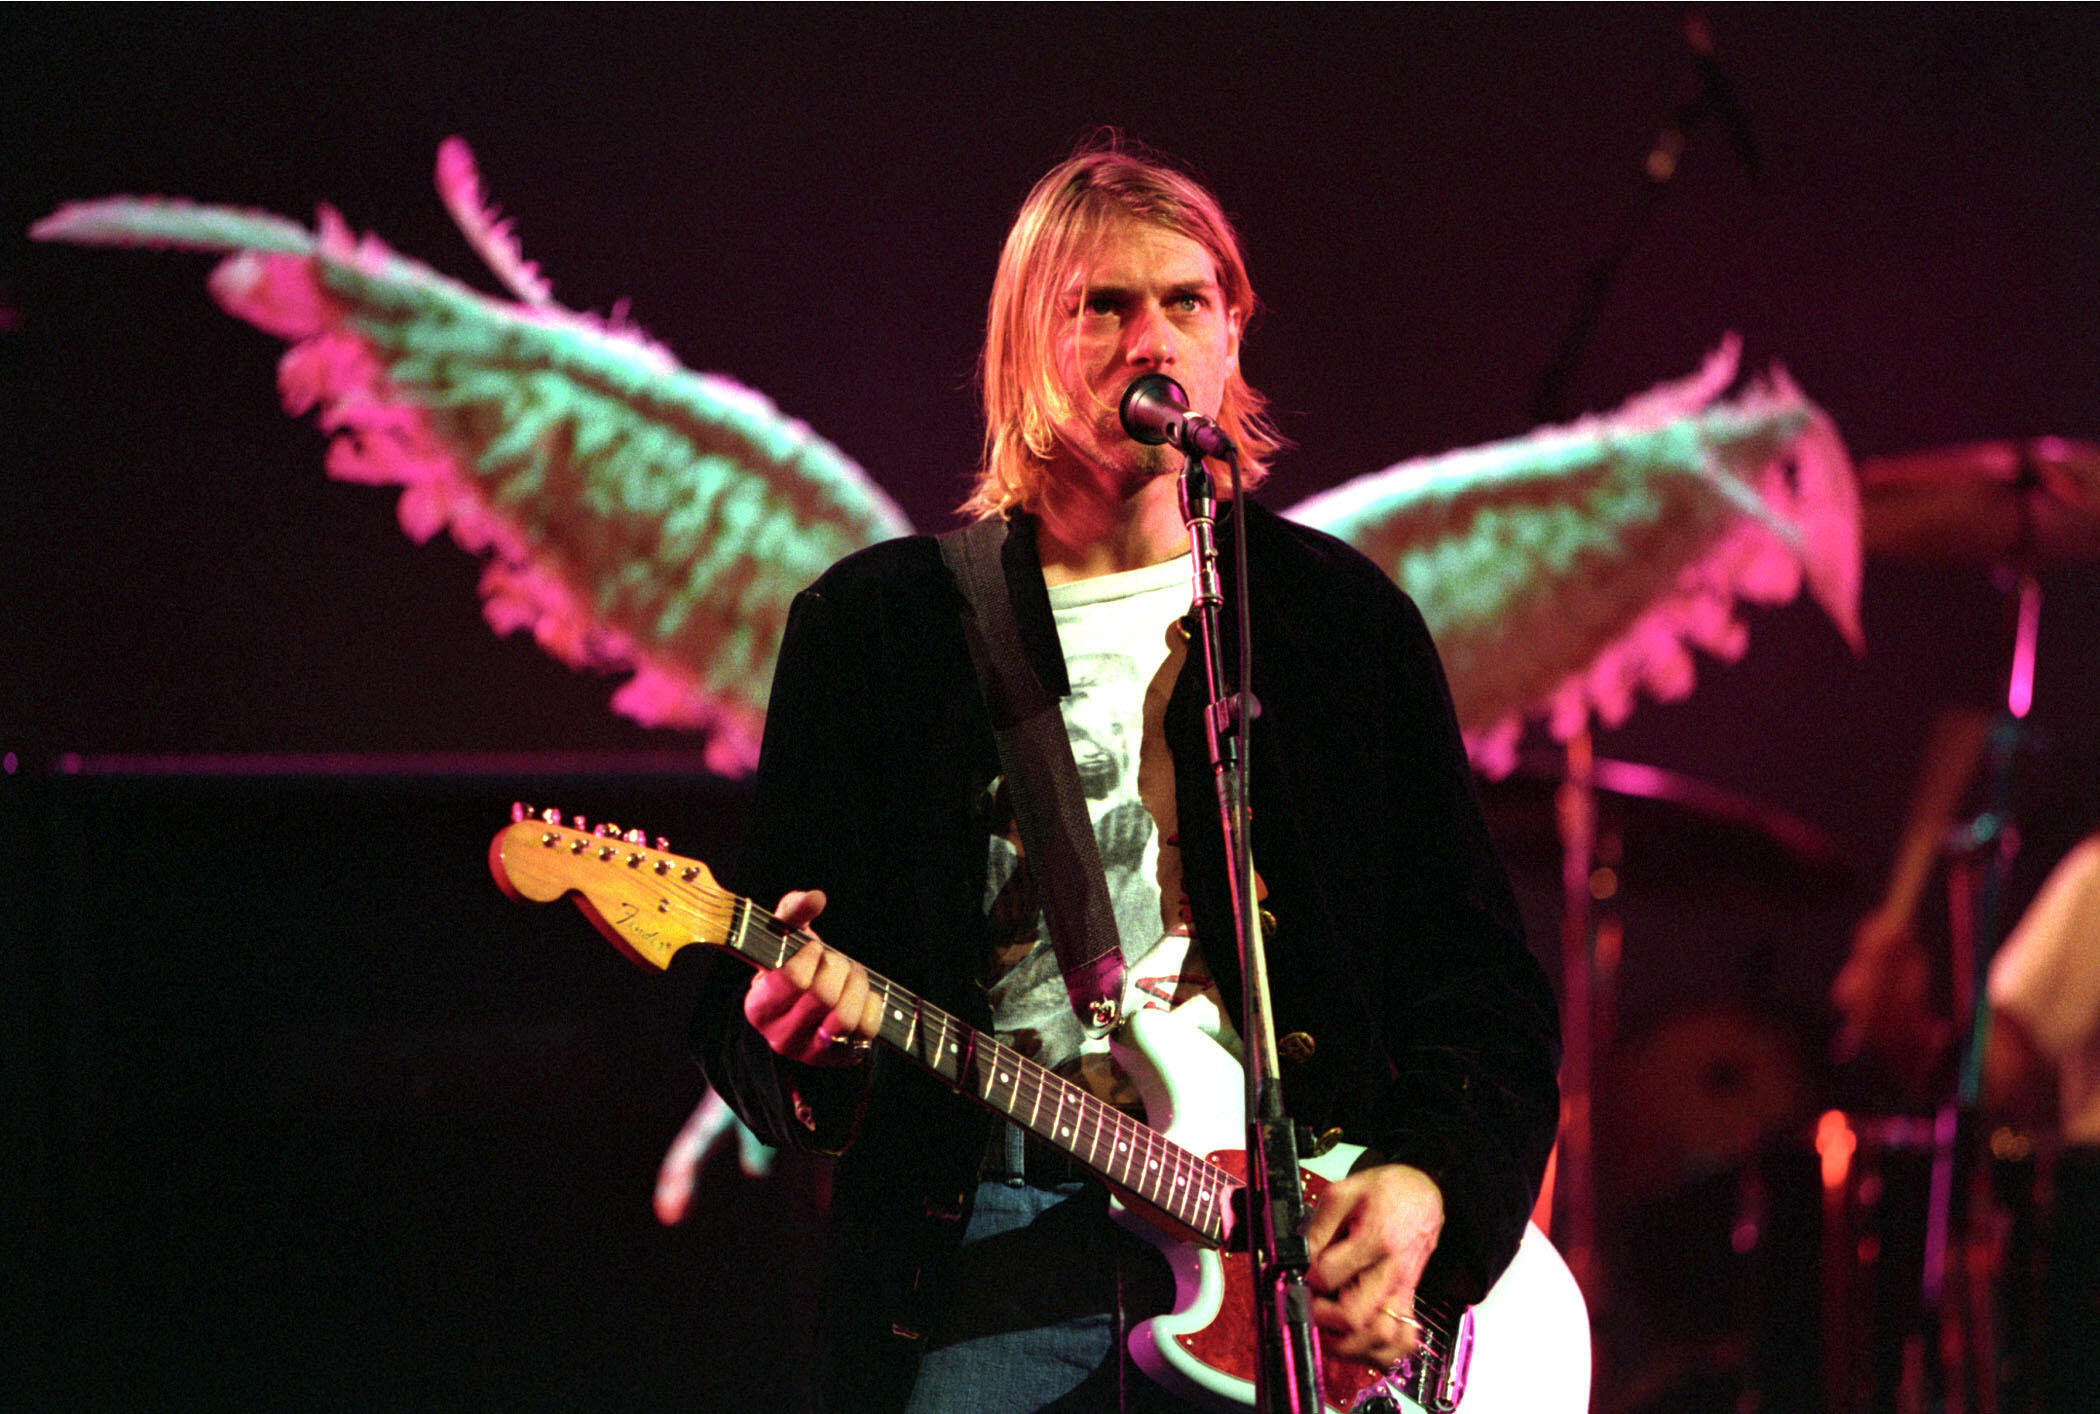 Kurt Cobain's Hair For Sale Alongside Stage-Used Nirvana Cab, Signed Guitar